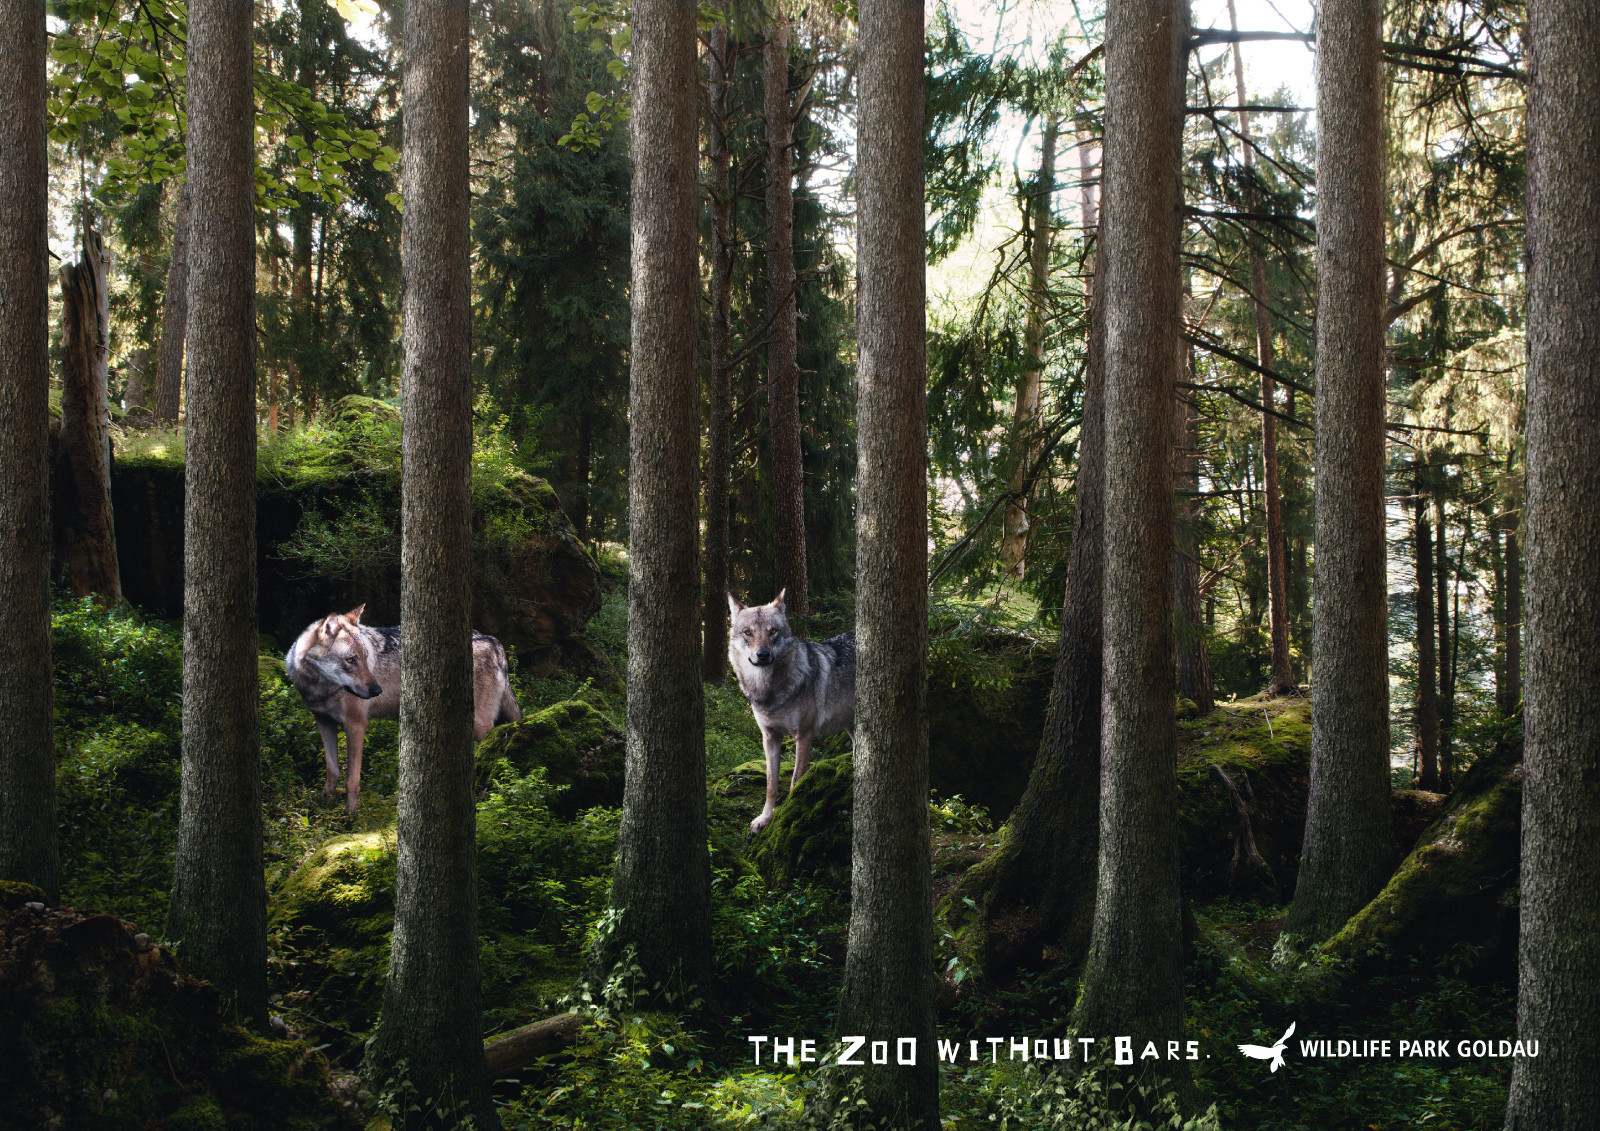 wildlife-park-goldau-wolves.jpg